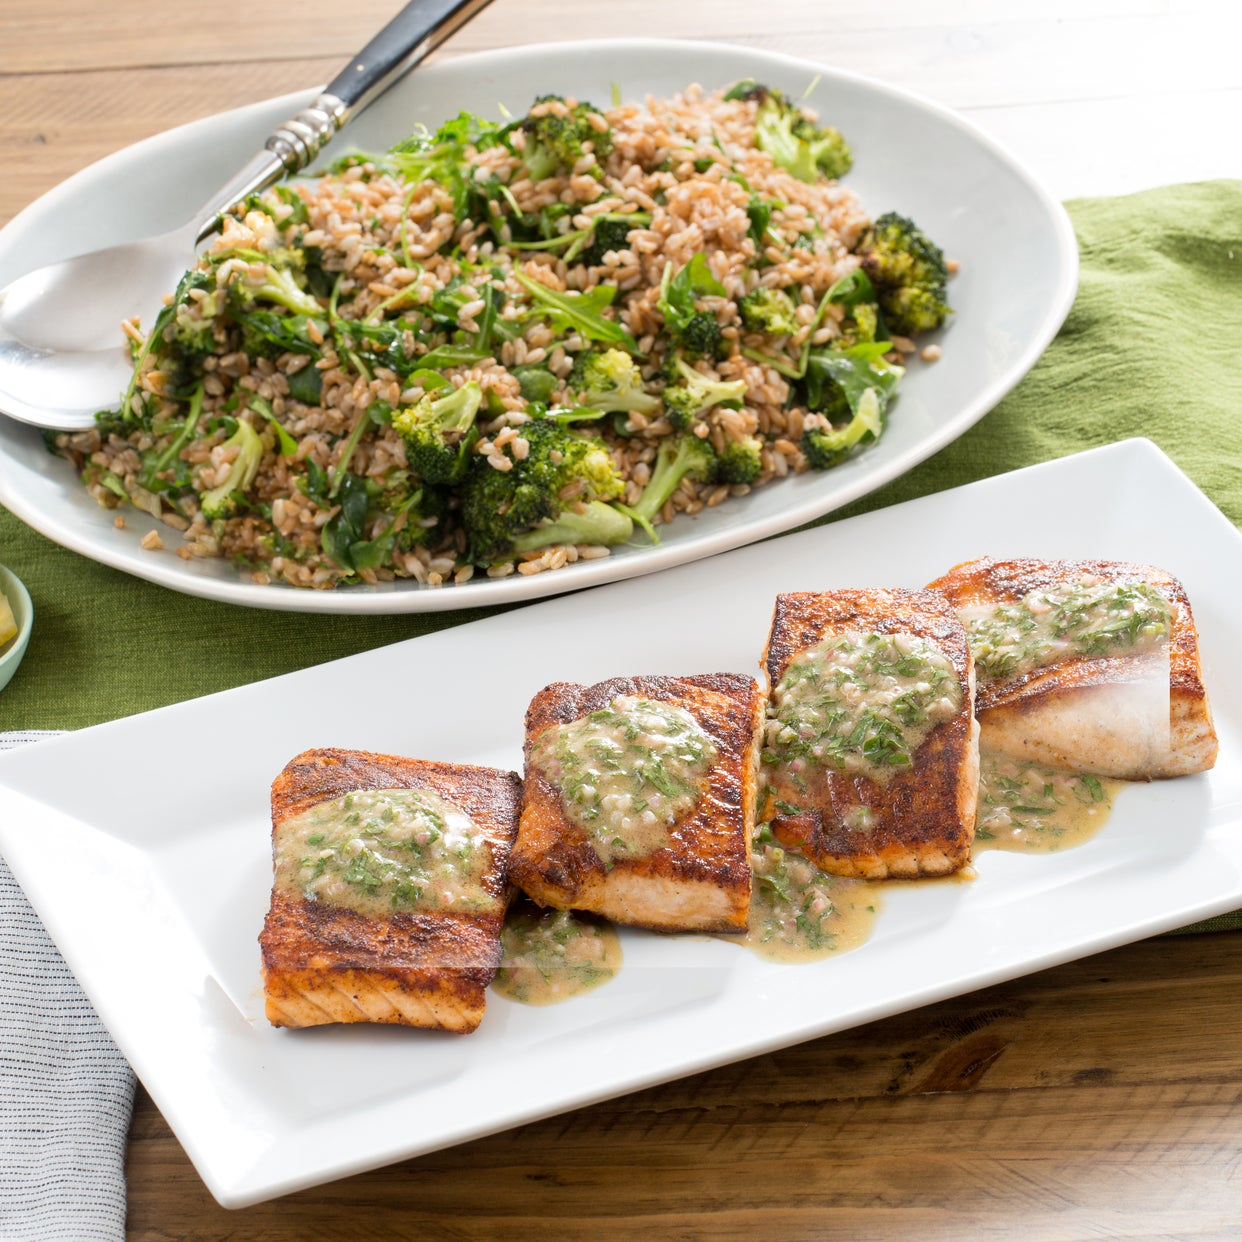 Seared Salmon with Roasted Broccoli & Farro Salad